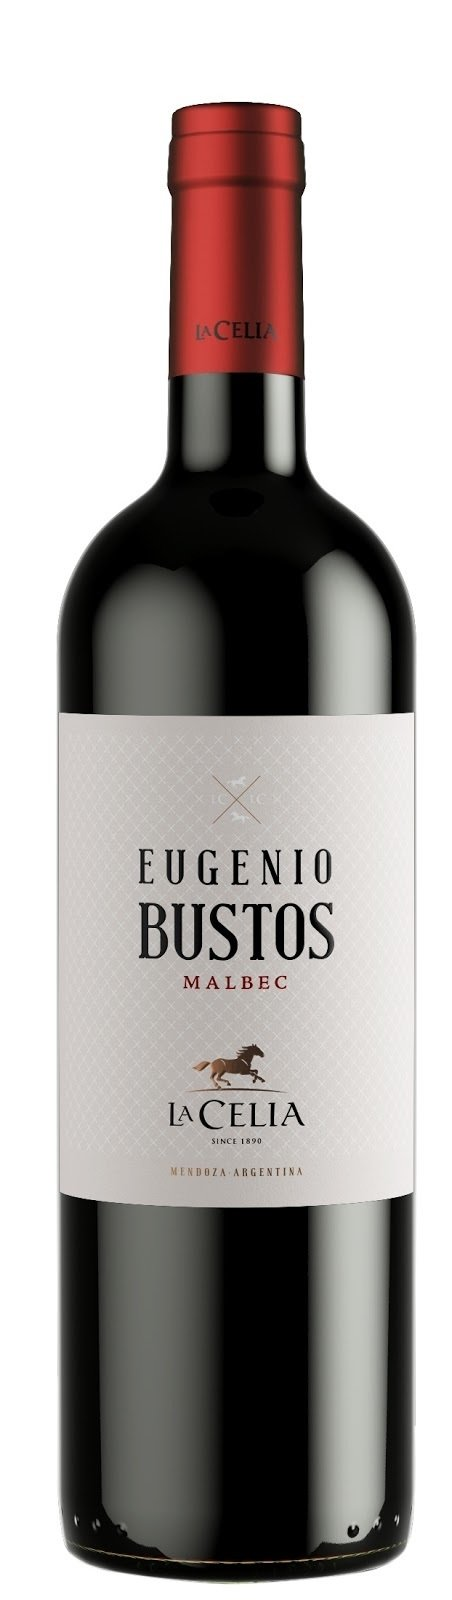 Eugenio Bustos Malbec x750 ml